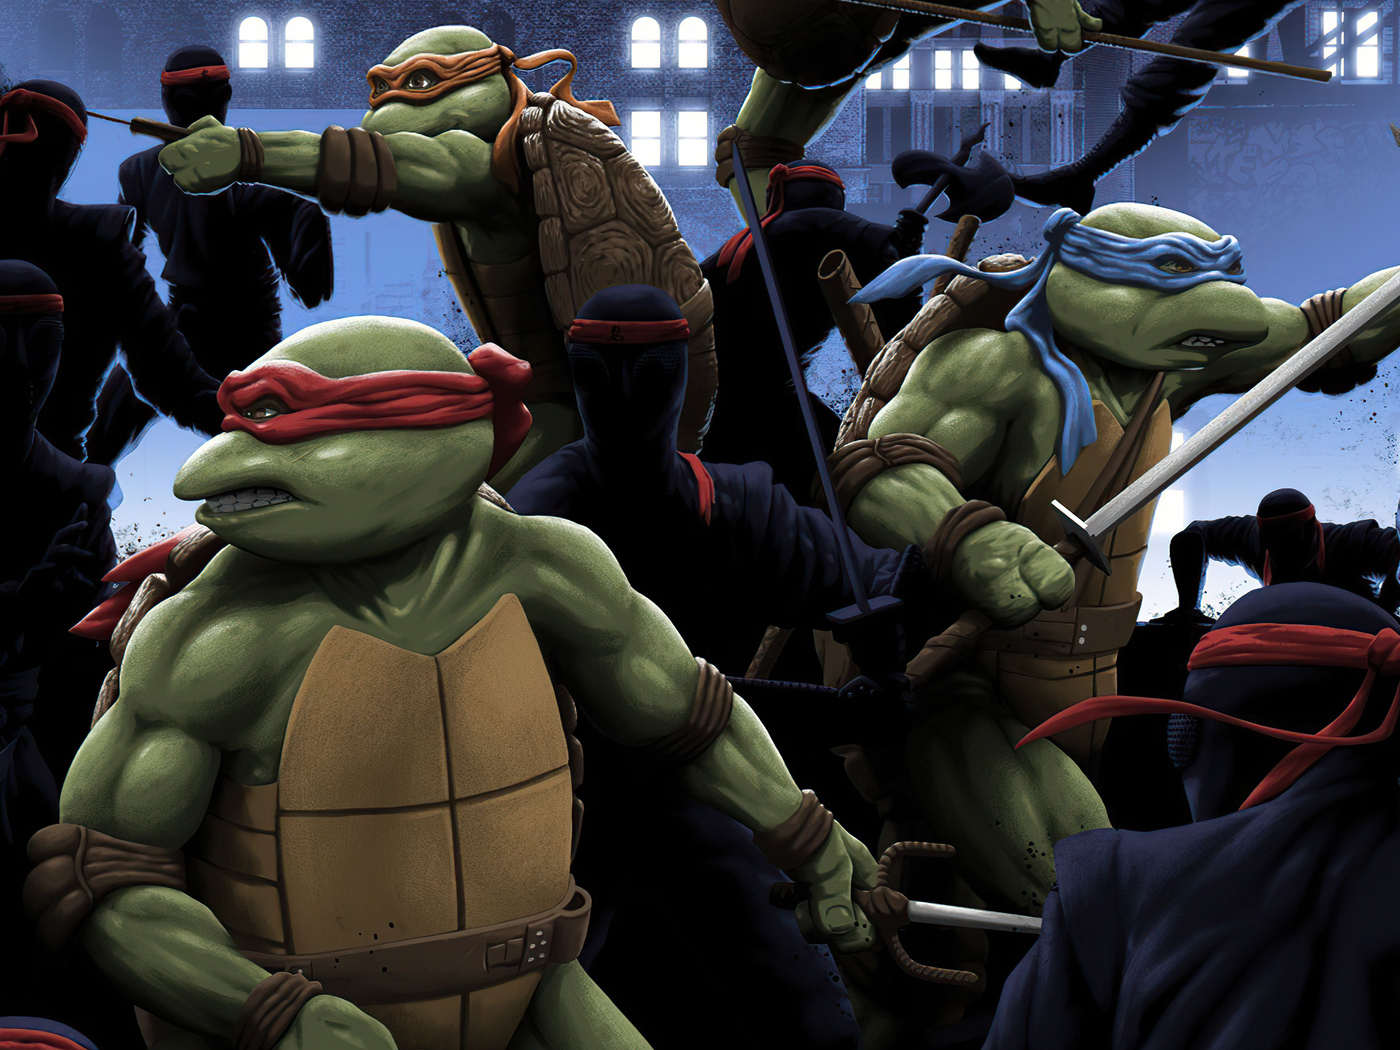 tmnt-animated-4k-av.jpg